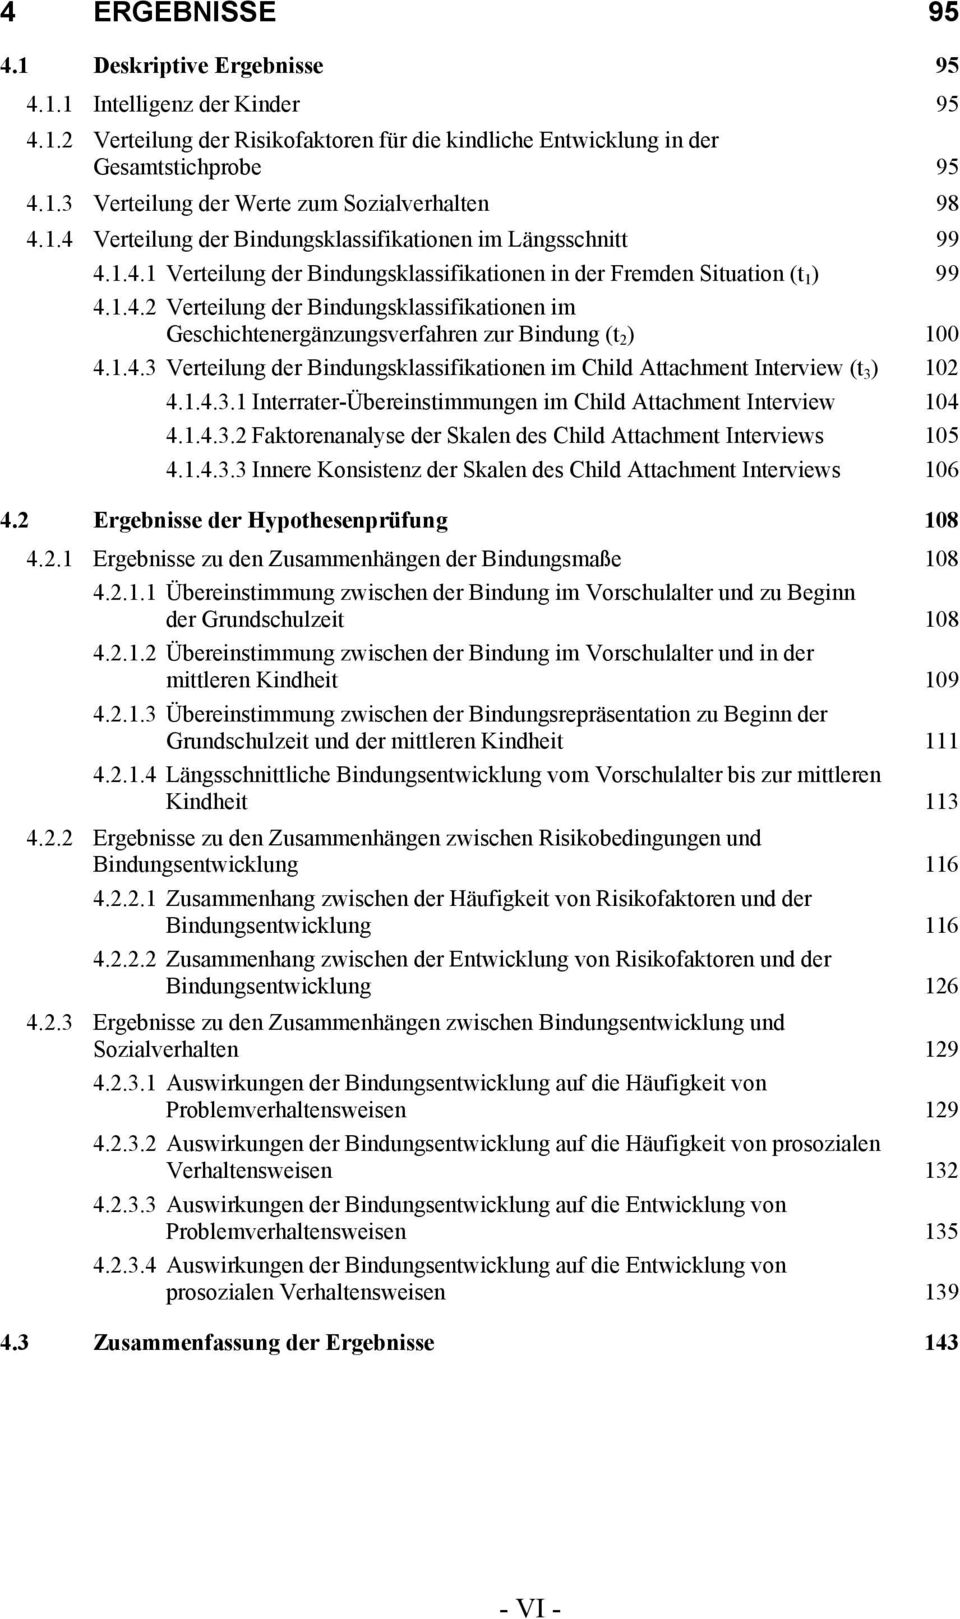 1.4.3 Verteilung der Bindungsklassifikationen im Child Attachment Interview (t 3 ) 102 4.1.4.3.1 Interrater-Übereinstimmungen im Child Attachment Interview 104 4.1.4.3.2 Faktorenanalyse der Skalen des Child Attachment Interviews 105 4.